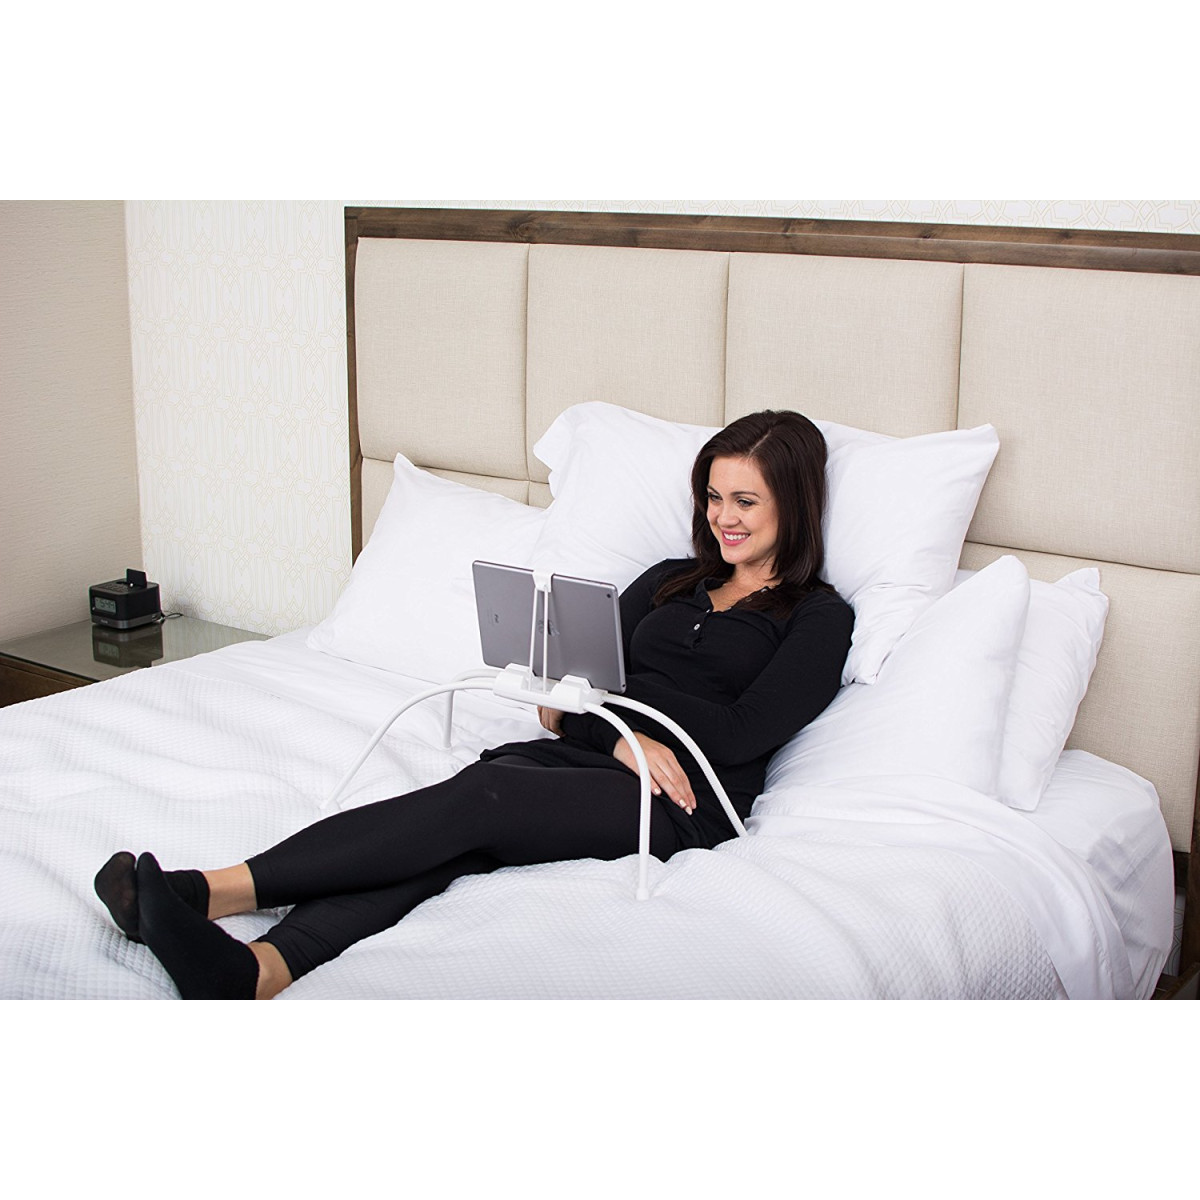 tablift tablet stand in white for the bed sofa or any uneven surface. Black Bedroom Furniture Sets. Home Design Ideas